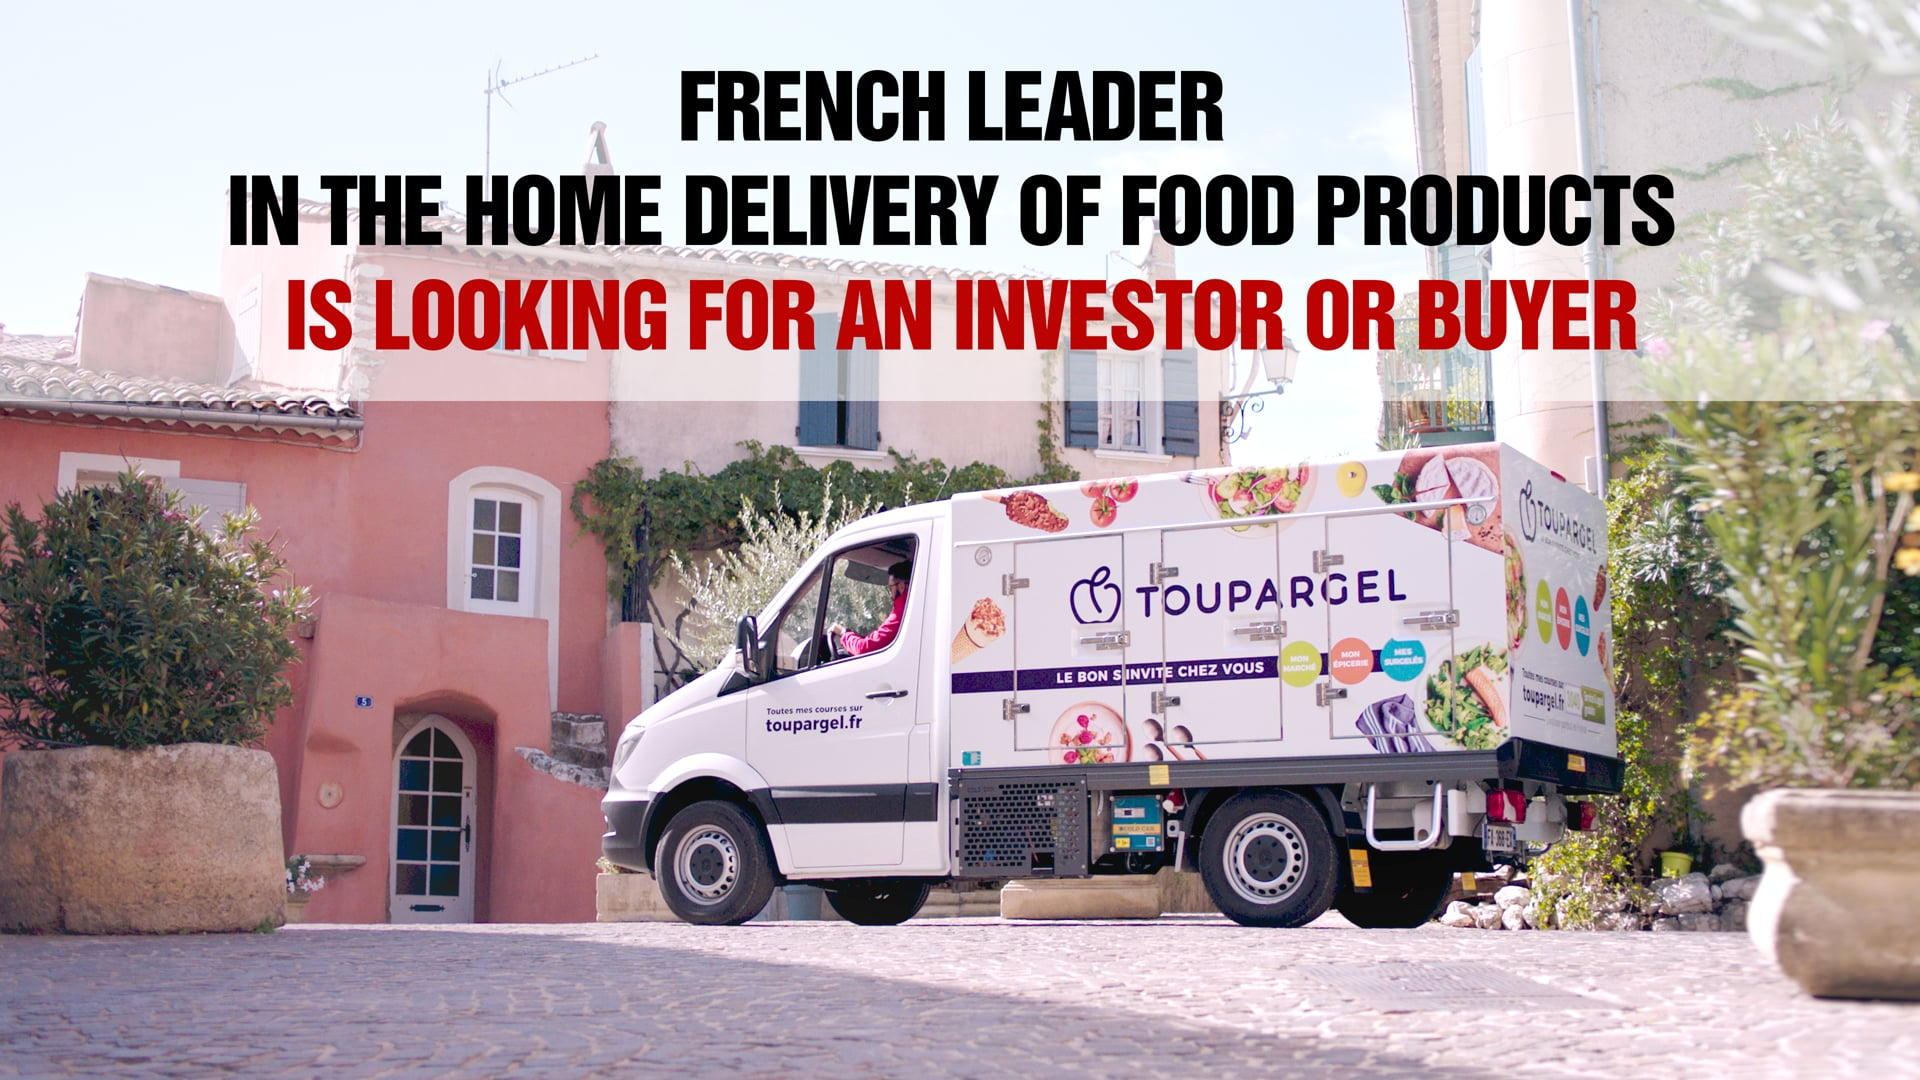 Toupargel Groupe - French leader of home delivery is seeking a buyer or an investor